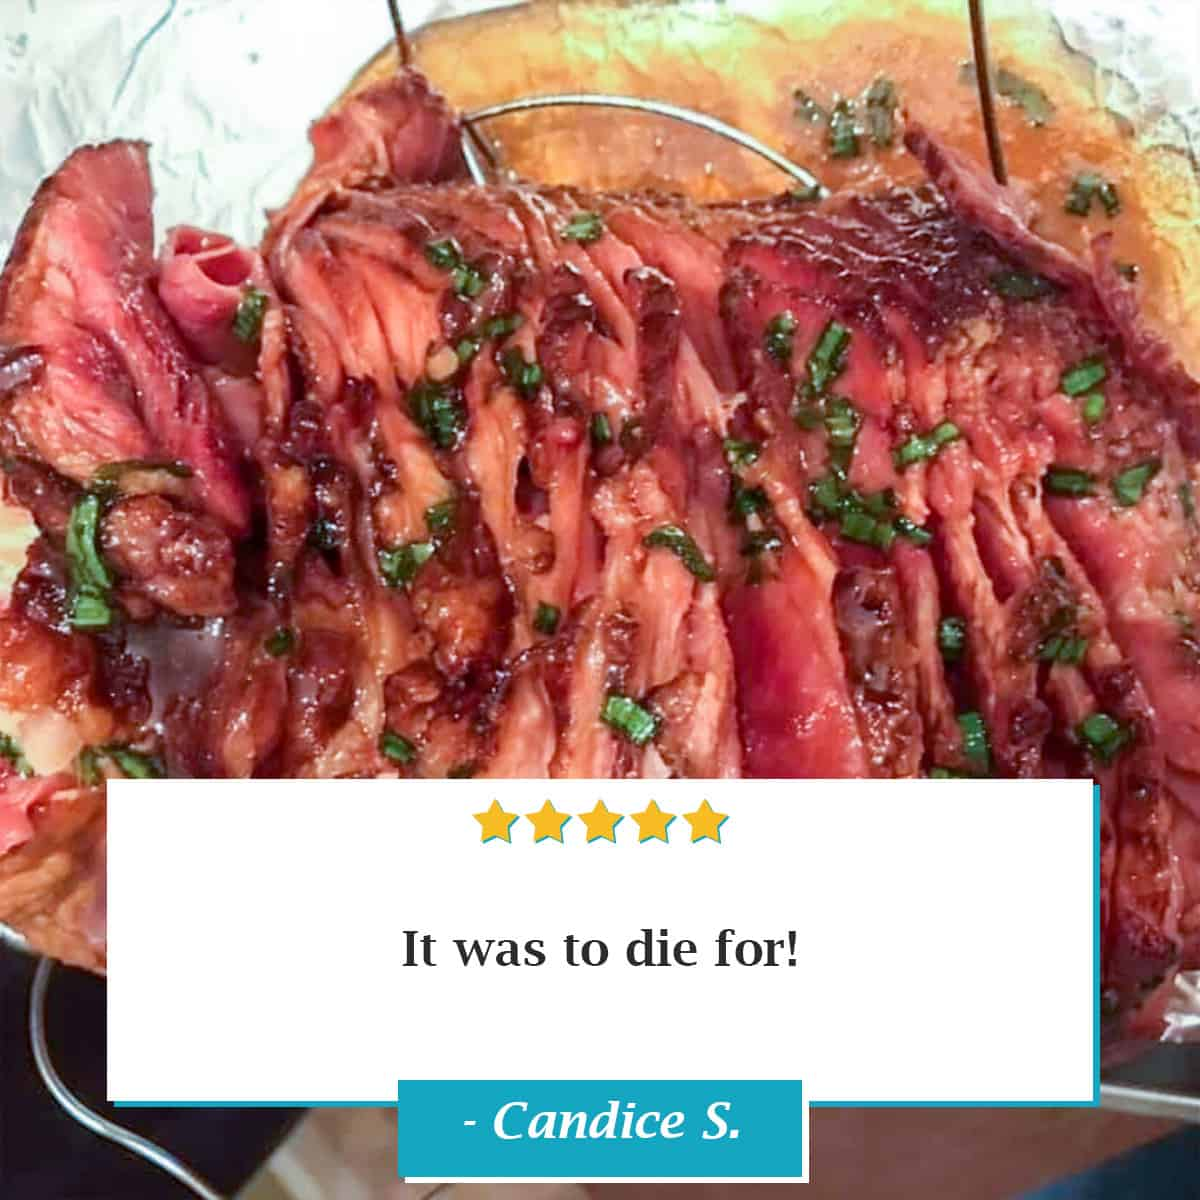 "Reviewer photo of the Instant Pot Ham recipe with the comment: ""It was to die for!"" with their name: Candice S."